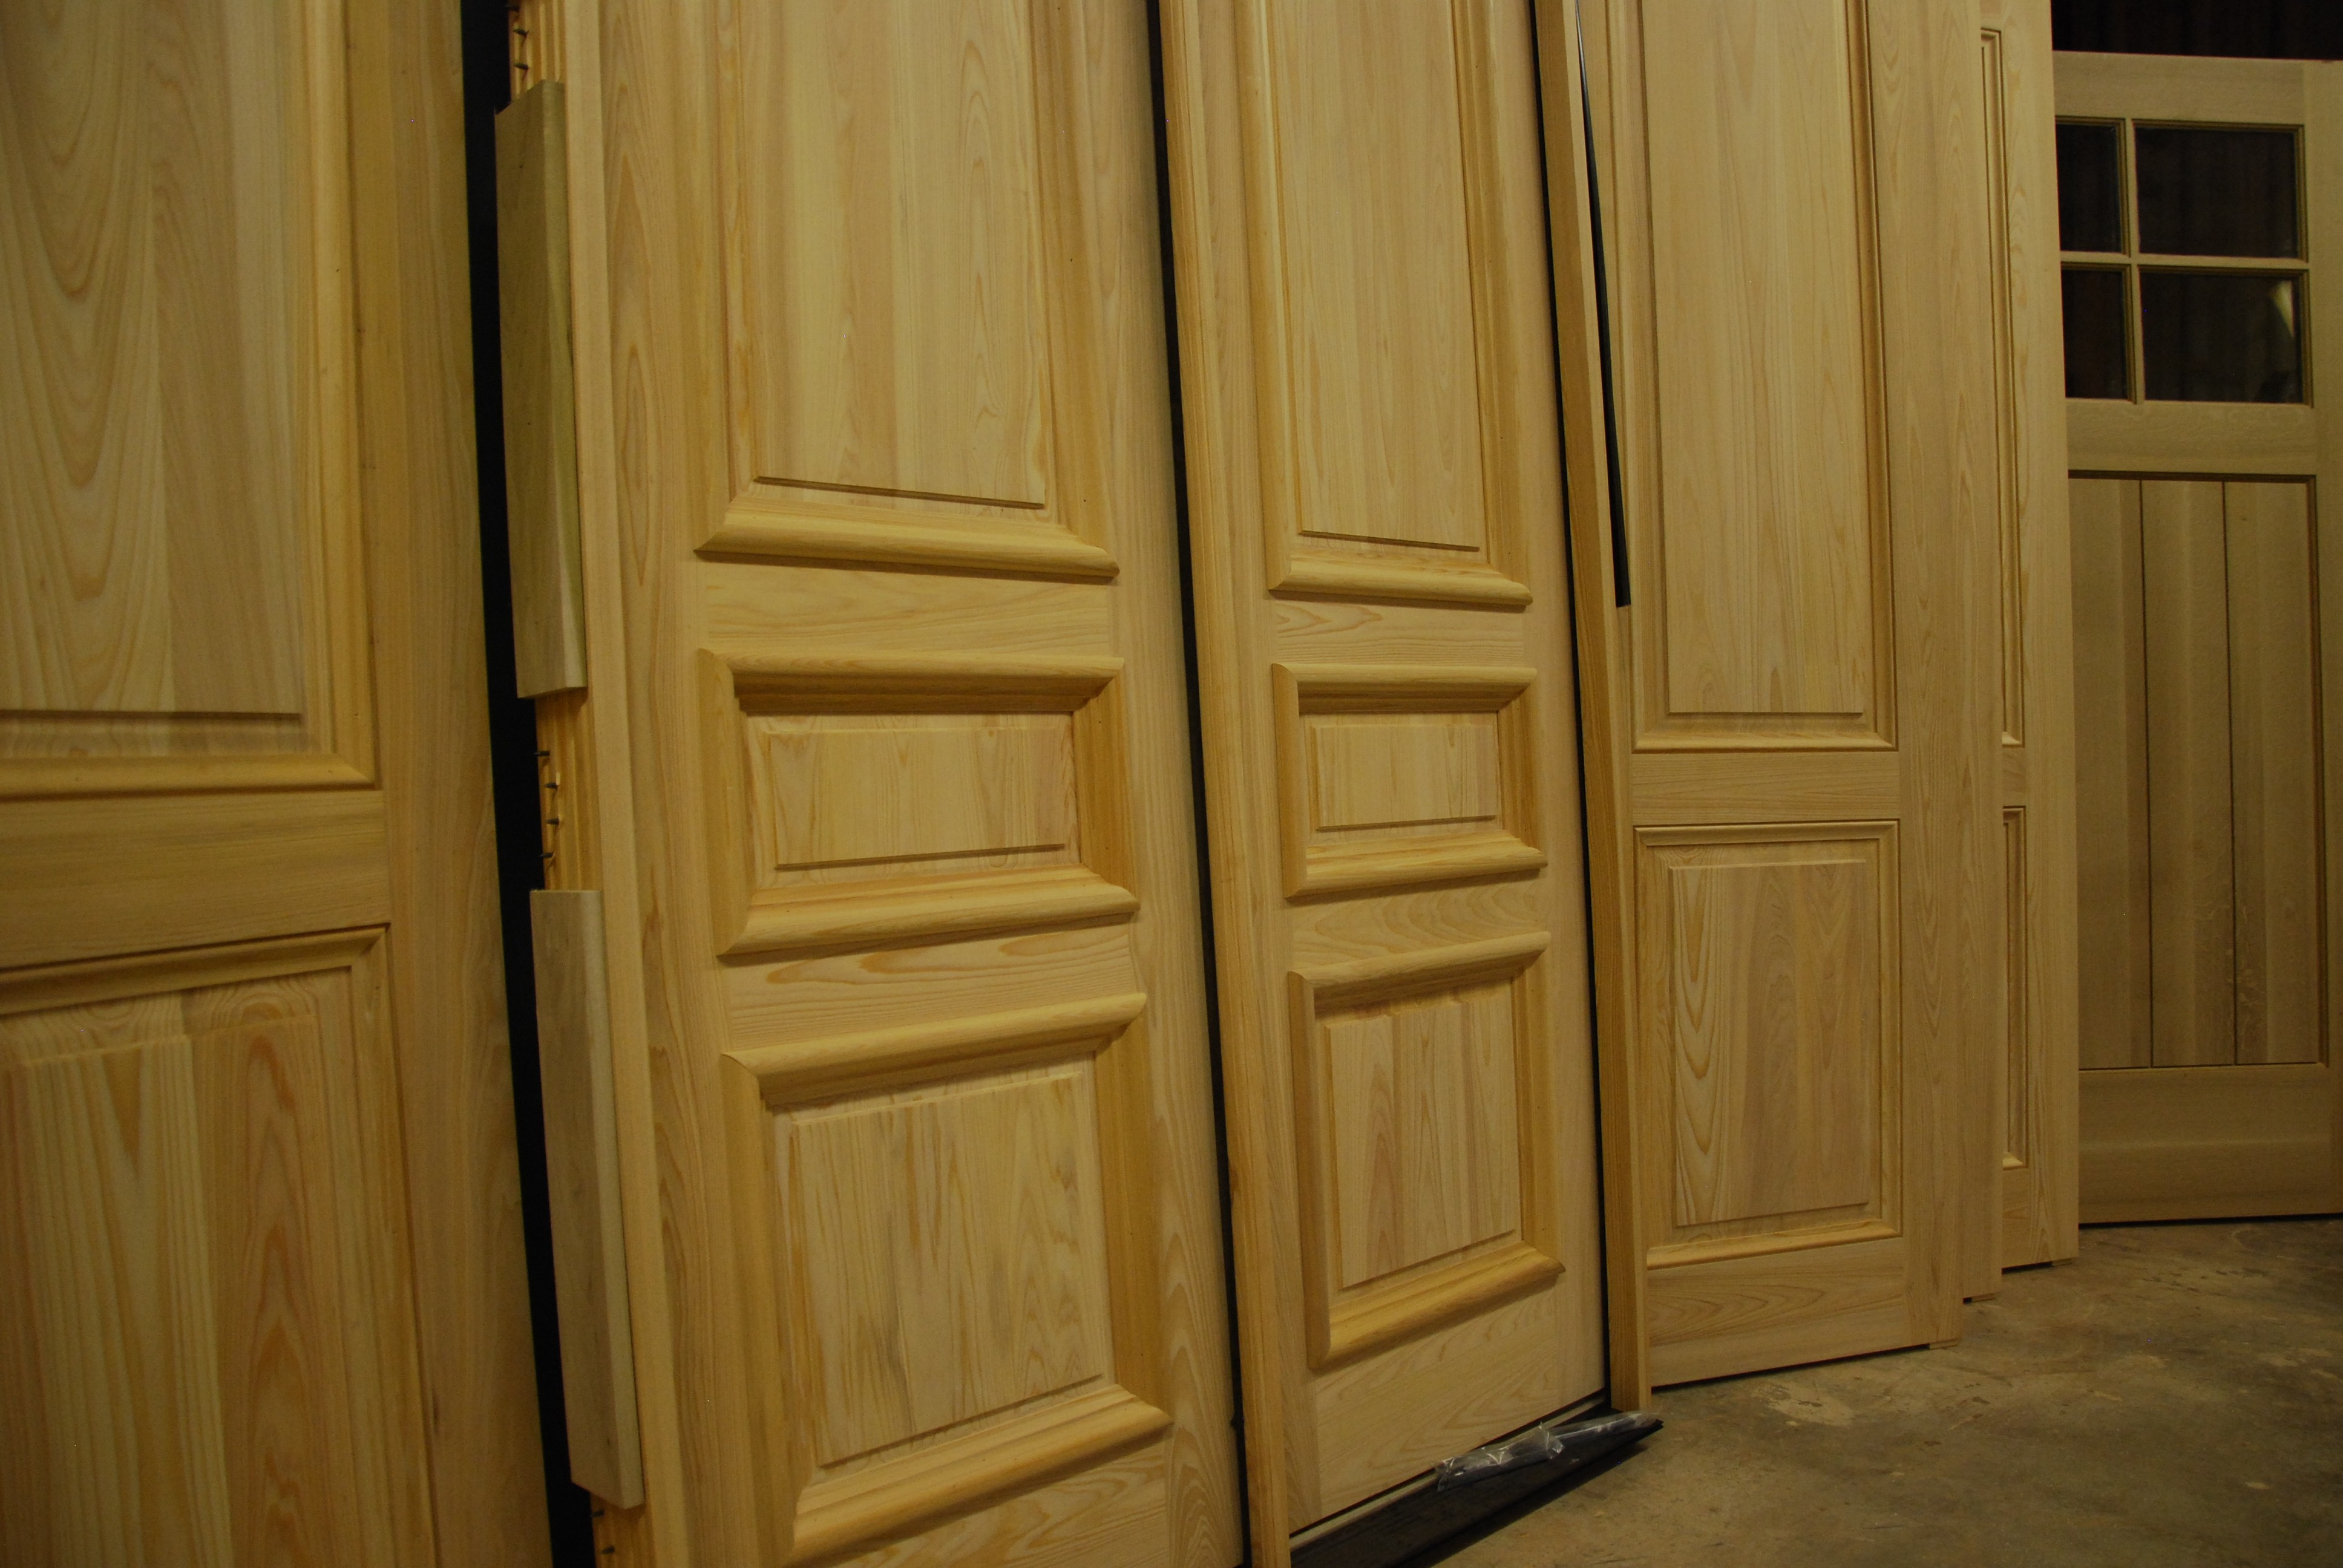 2592 #664918 Russell Millworks Doors Russell Millworks picture/photo Millwork Doors 48193872